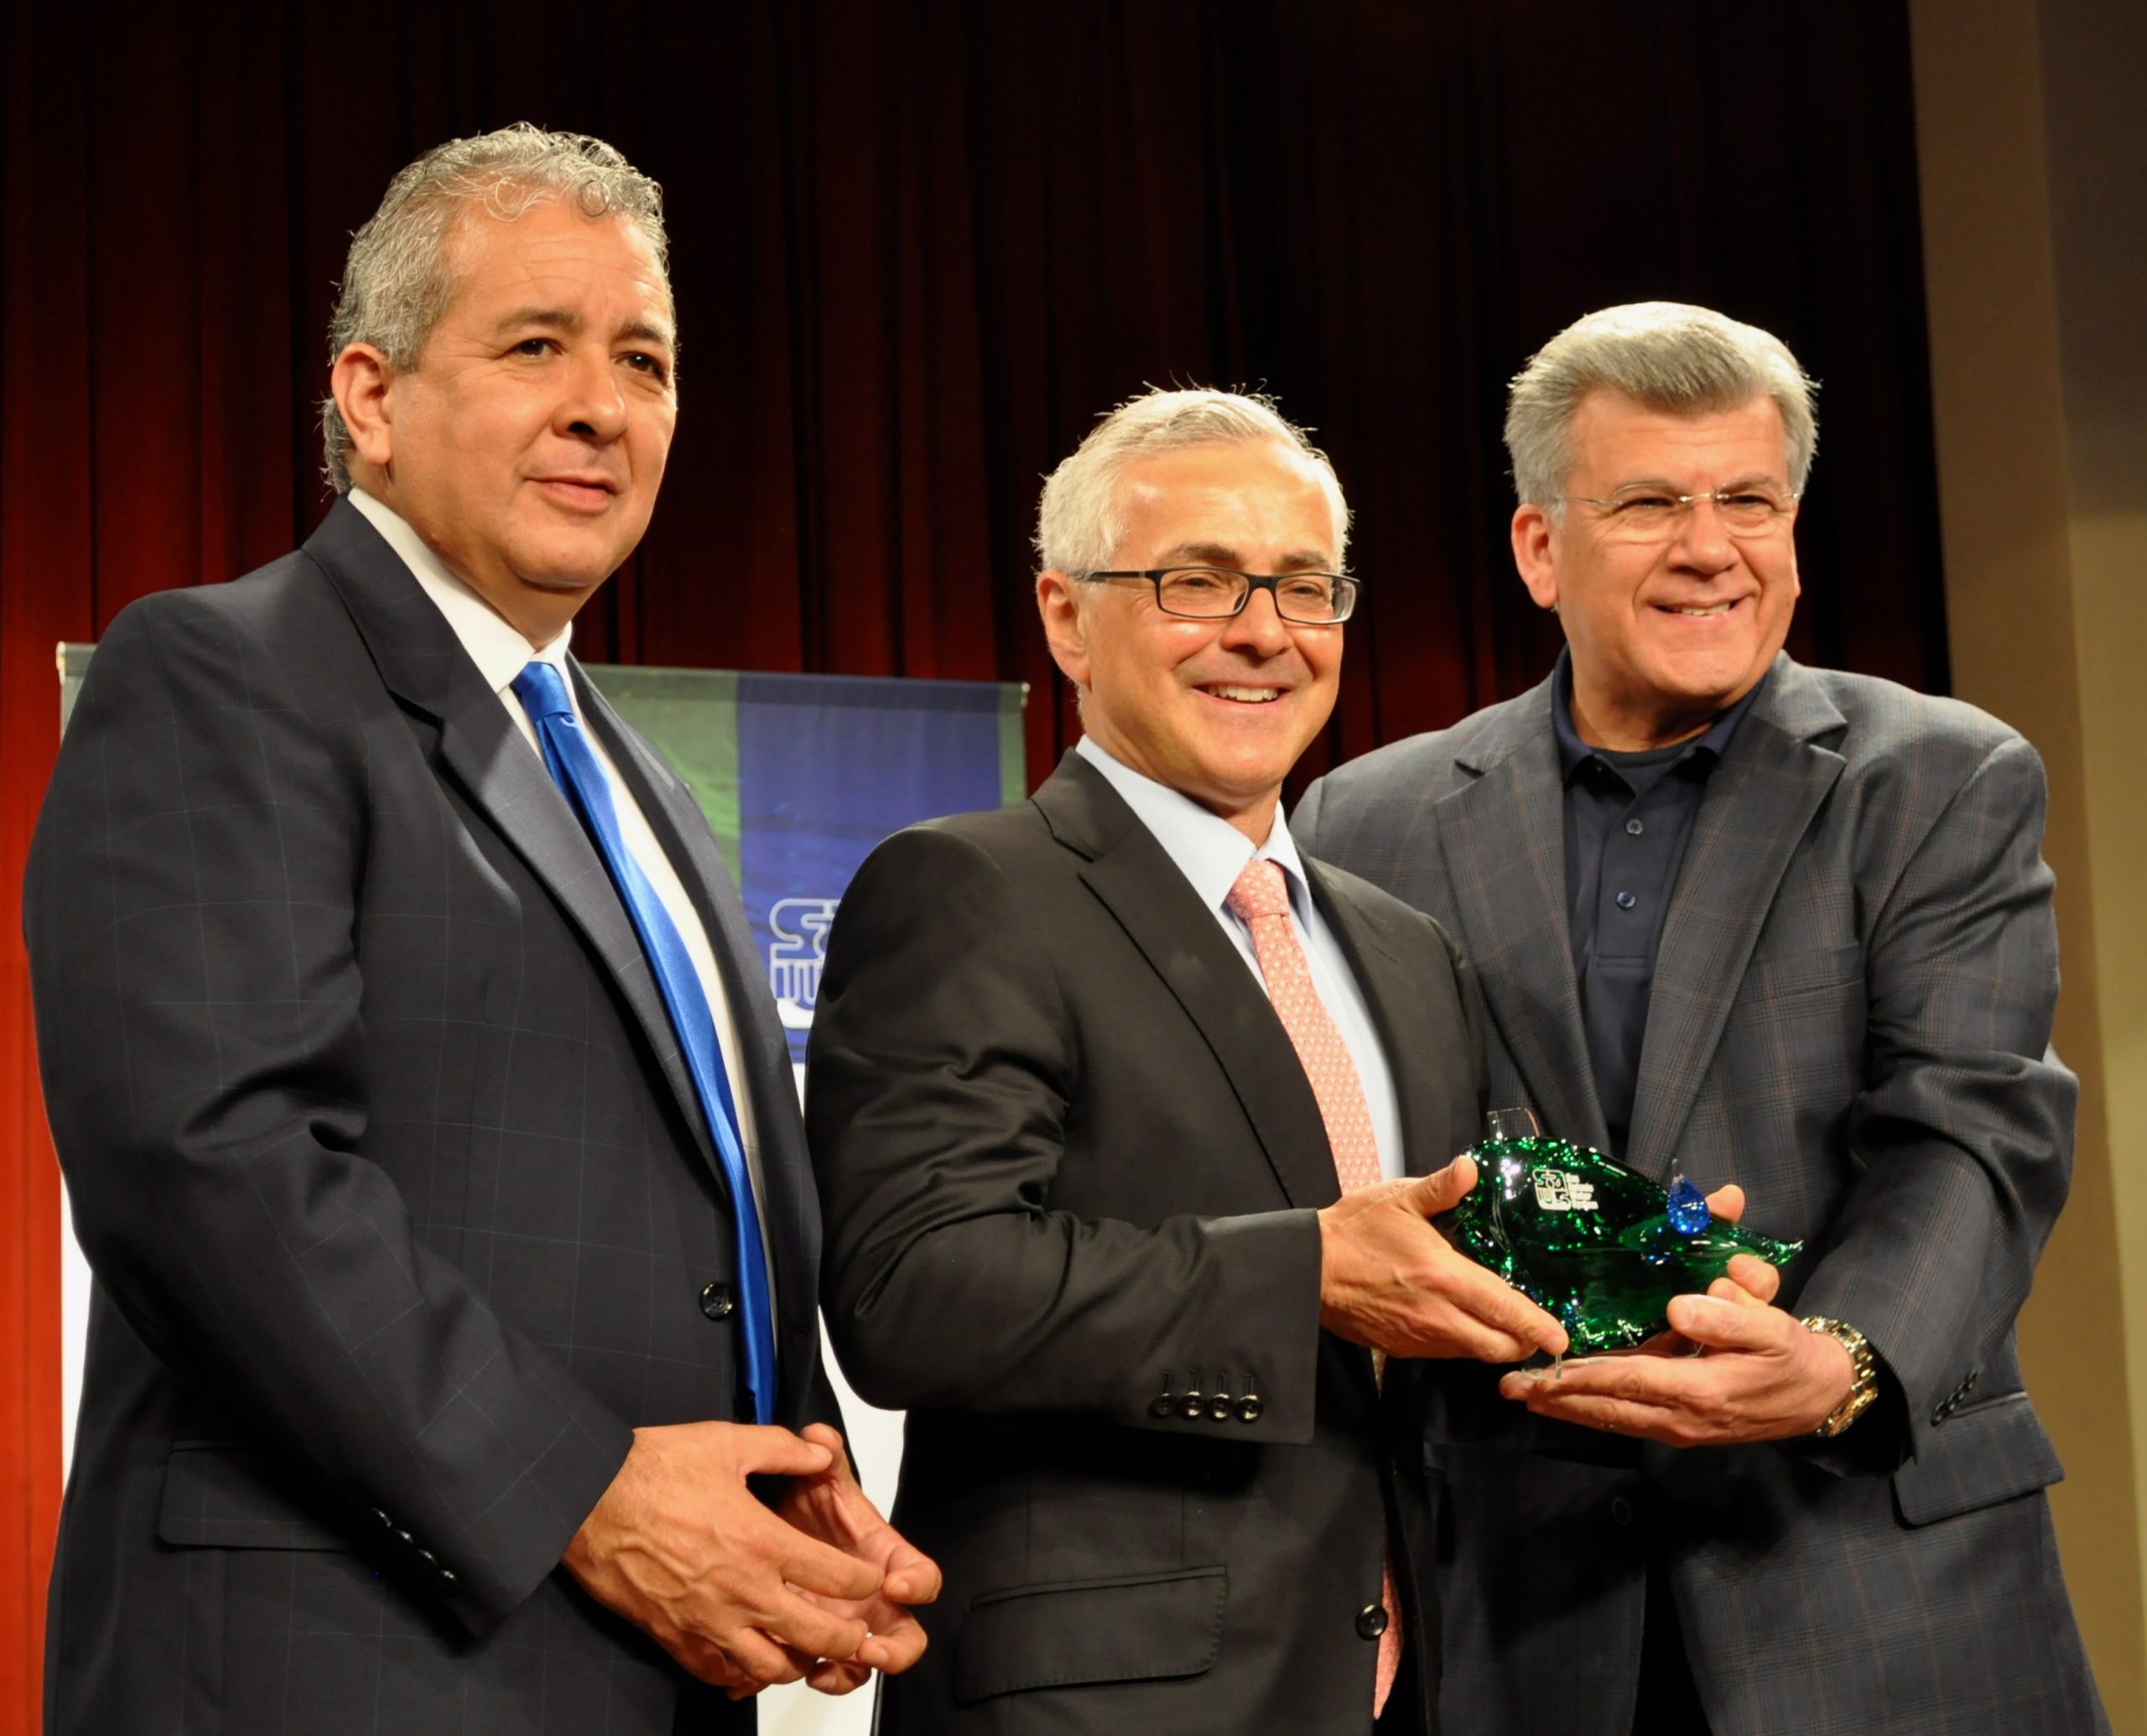 """John Badagliacco, general manager of The Shops at La Cantera, (center) accepts the 2013 SAWS Refreshing Ideas Award from and SAWS Chairman Heriberto """"Berto"""" Guerra (right) and SAWS President and CEO Robert Puente. Photo by Iris Dimmick."""